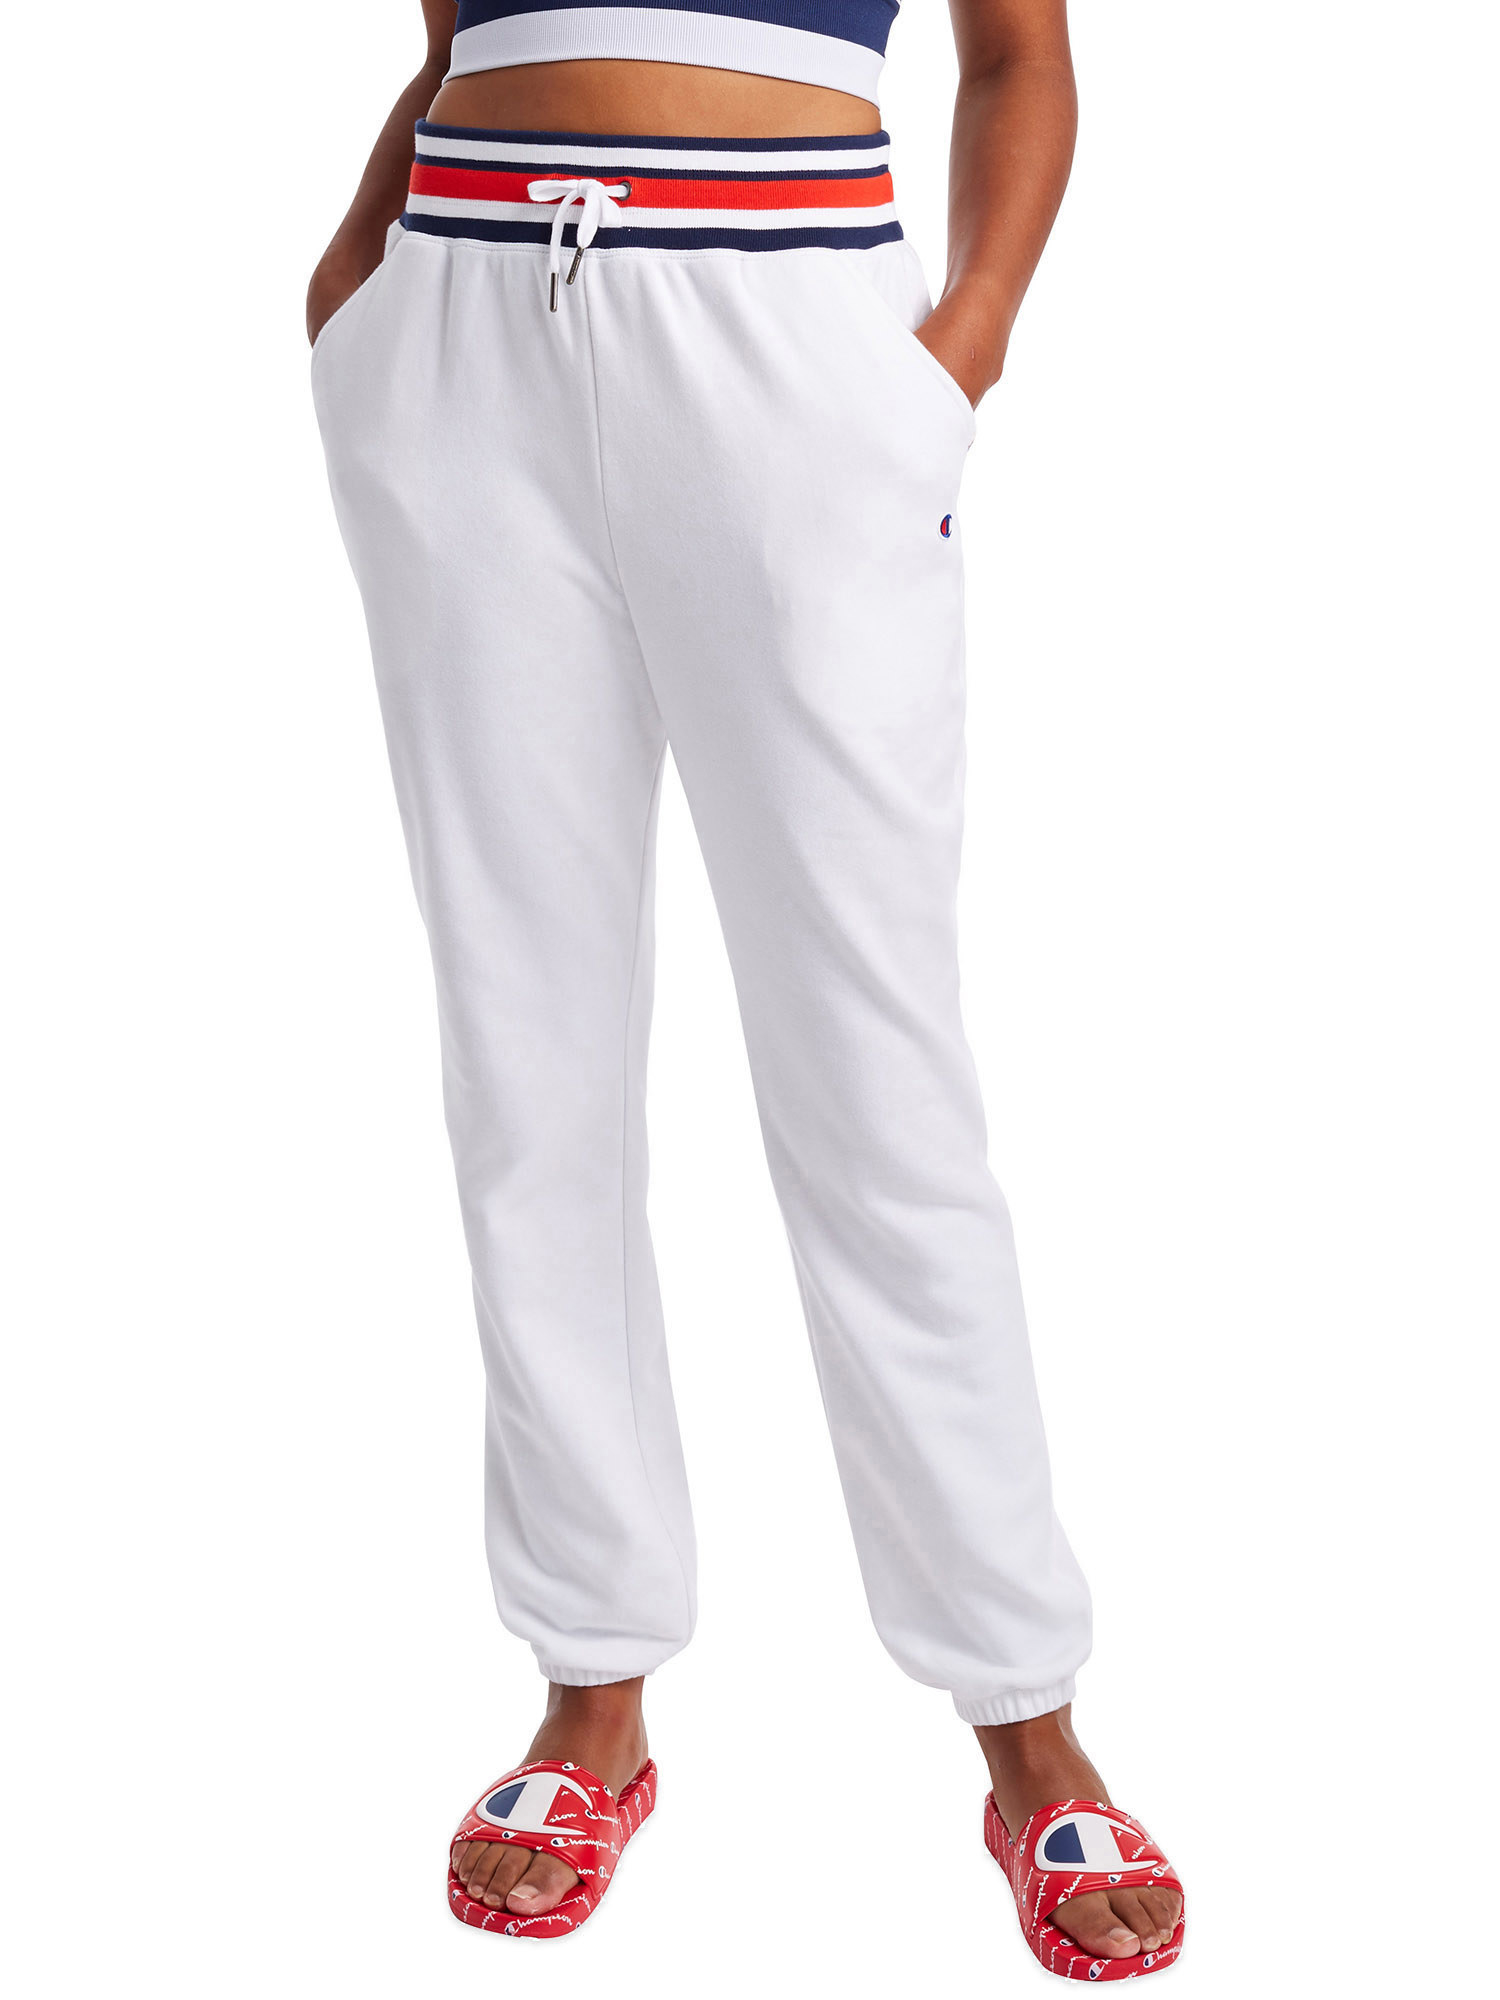 The white sweatpants with red, blue, and white striped waistband